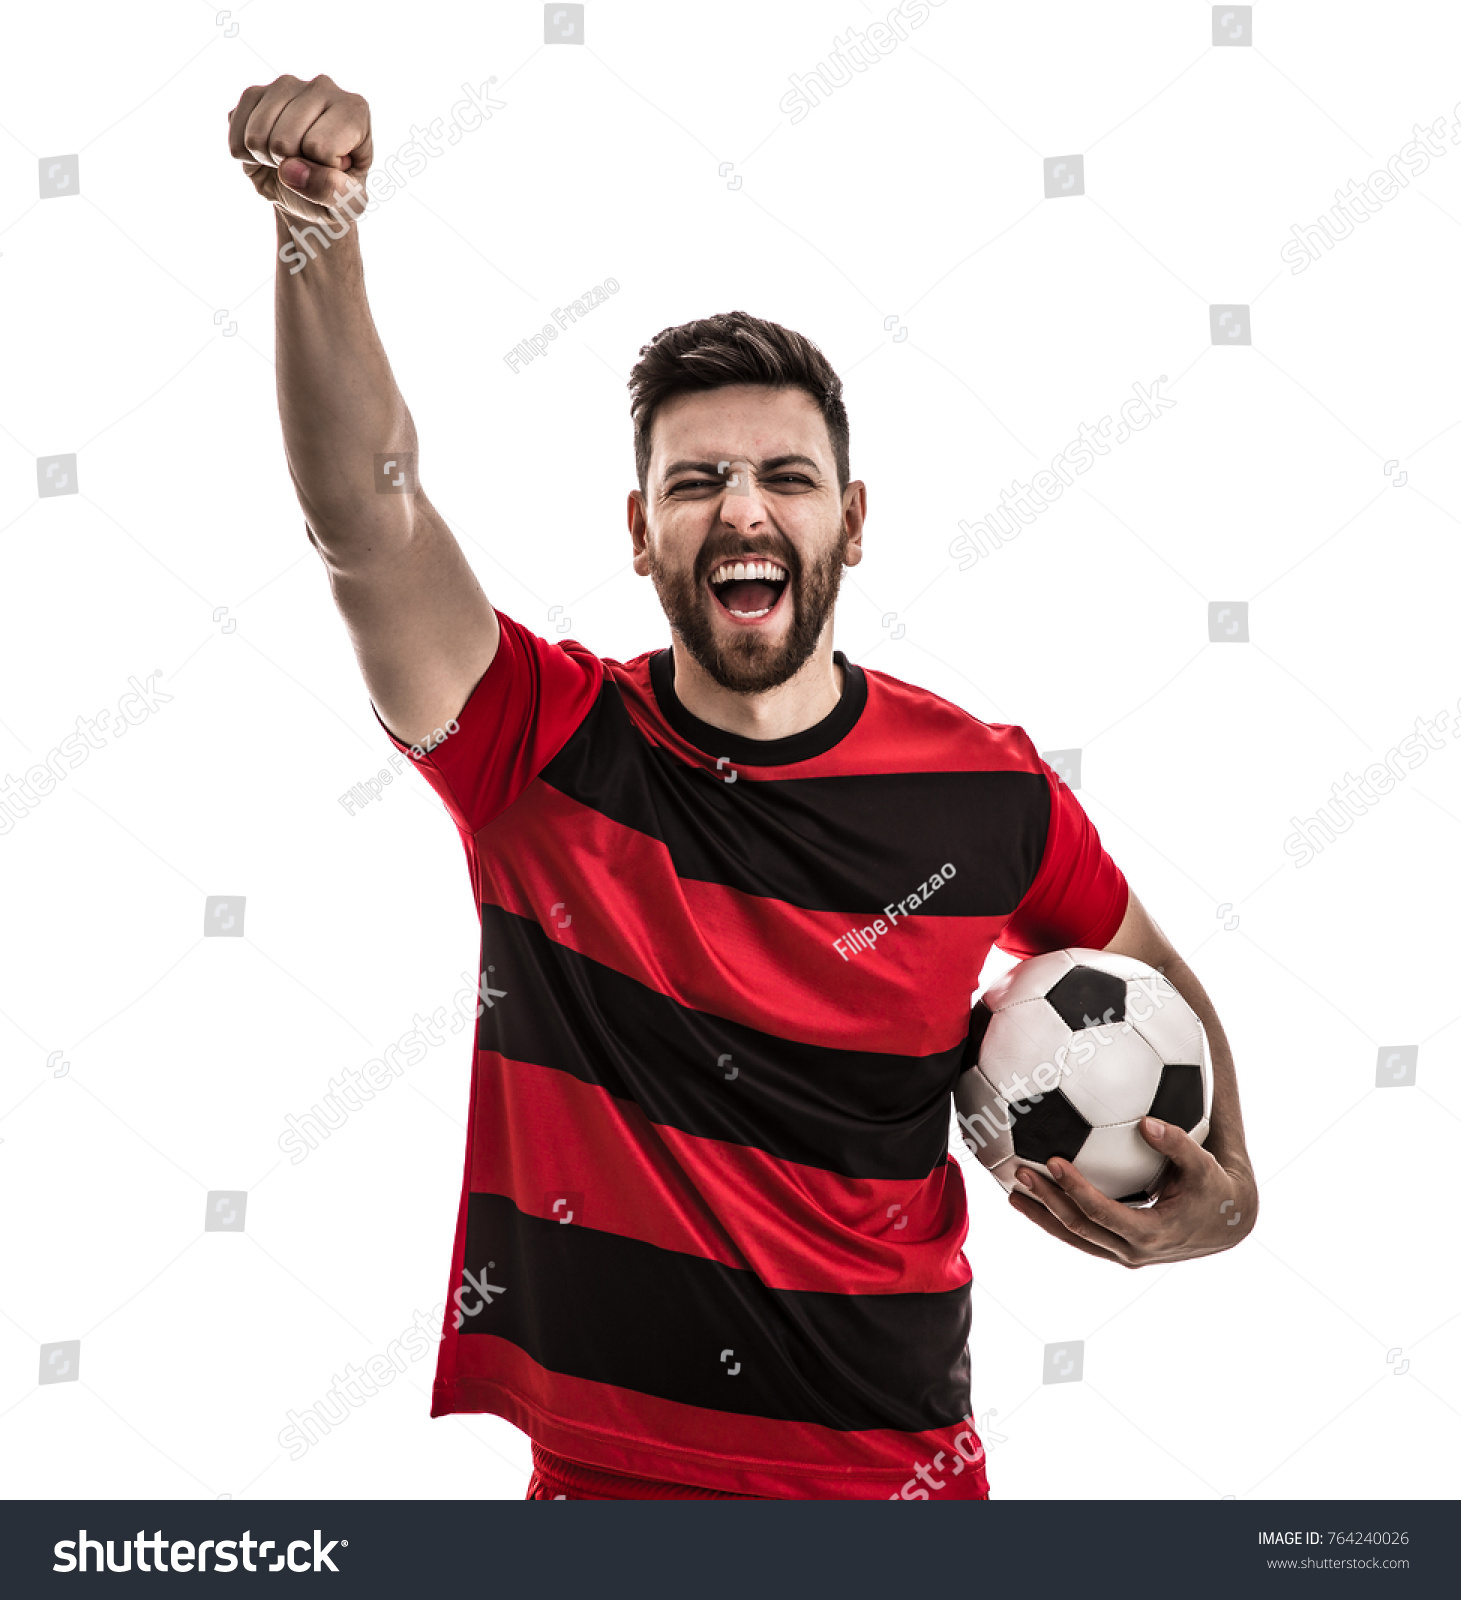 Male athlete / fan in red and black uniform celebrating on white background #764240026